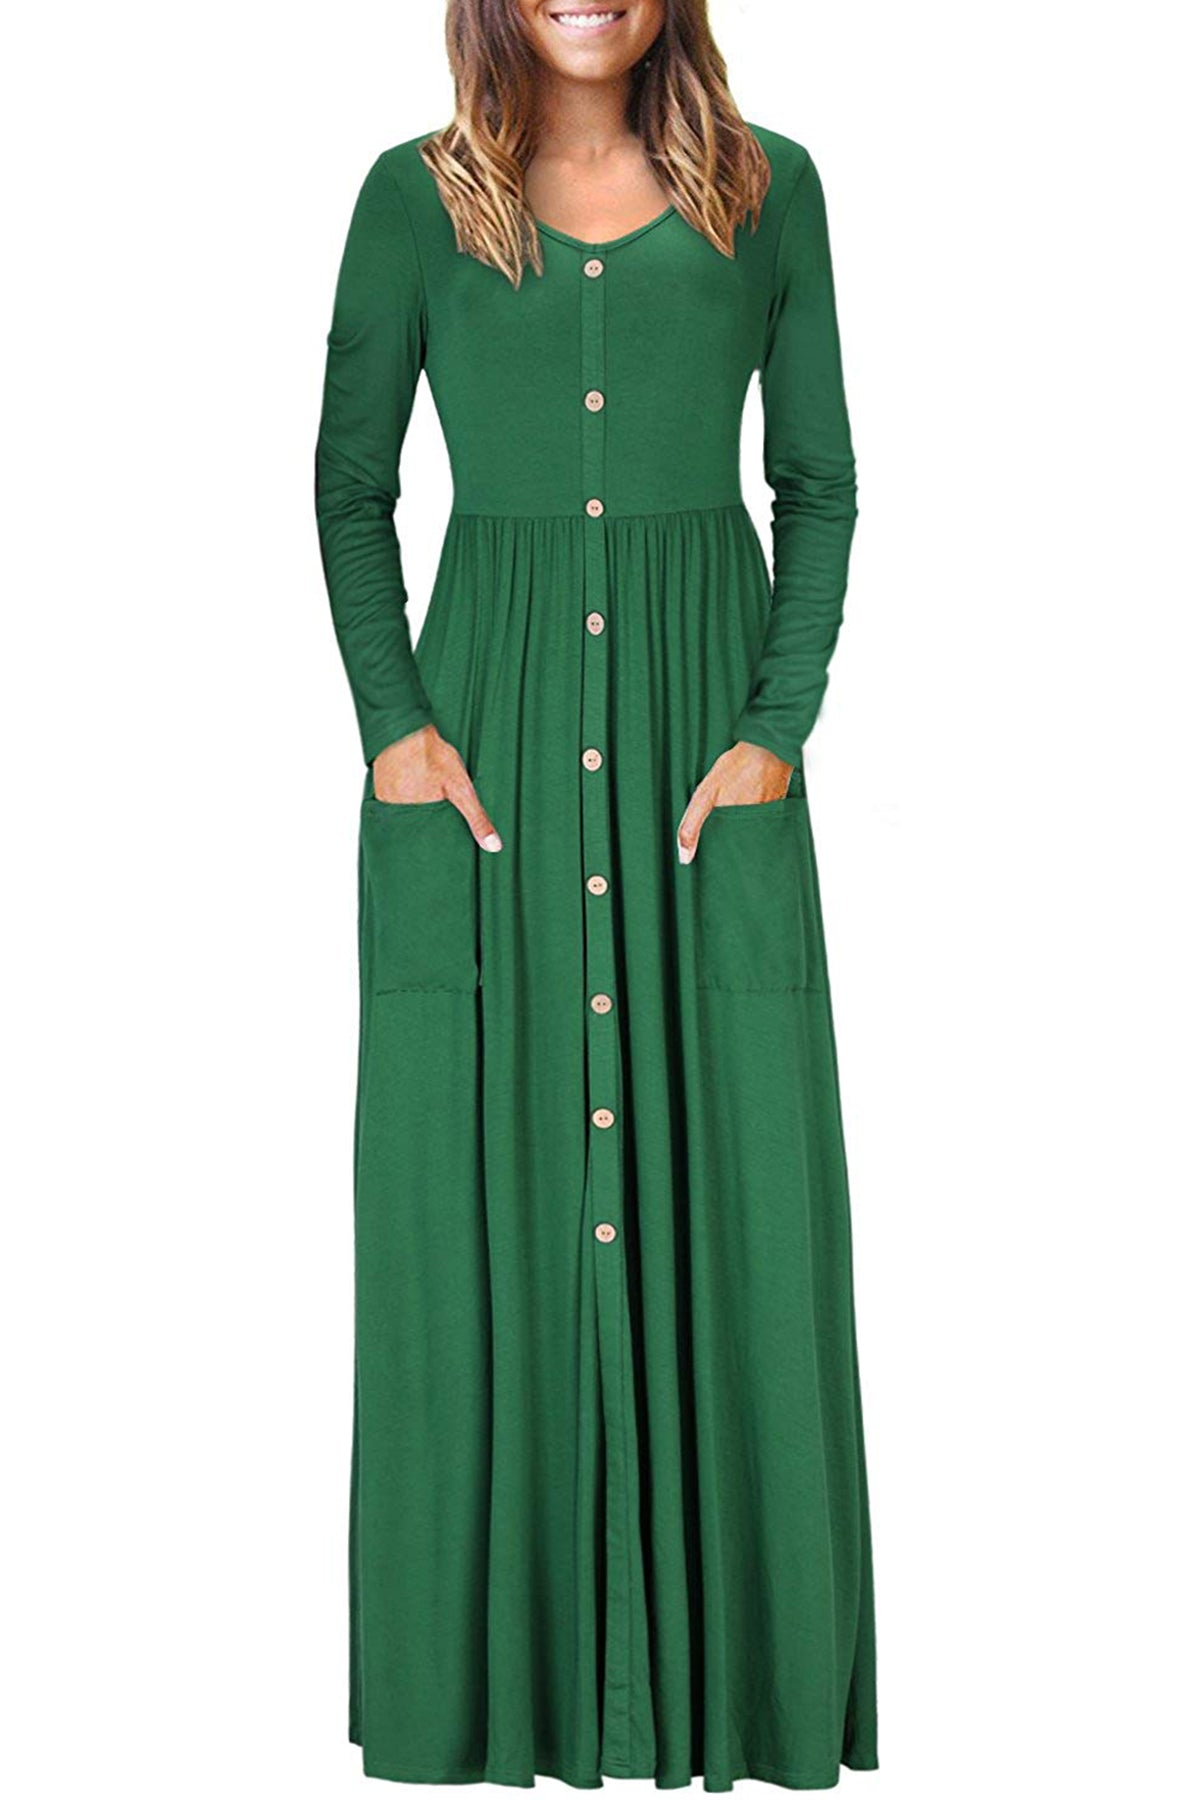 Hunter Green Button Front Pocket Style Casual Long Dress